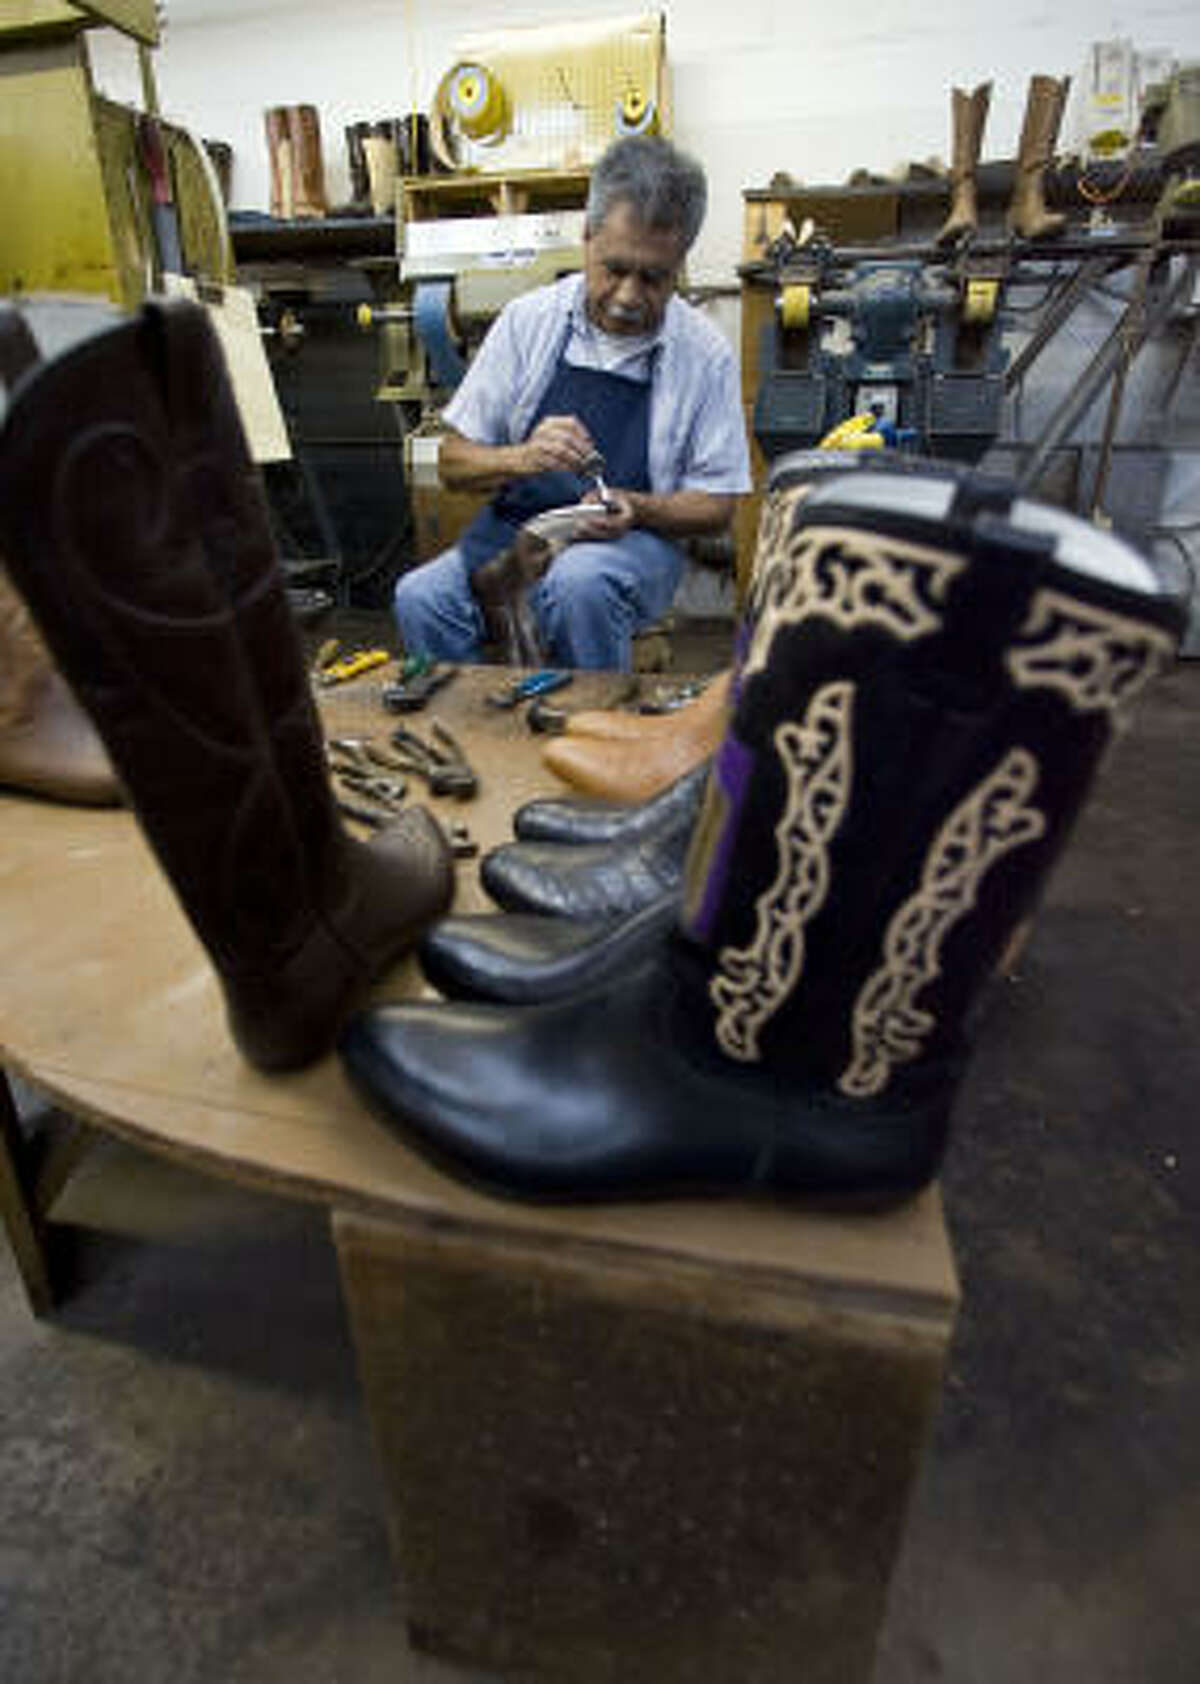 Jorge Amaro works on a pair of boots at the Wheeler Boot Co. T.J. Farnsworth won't say how much his custom pair cost.